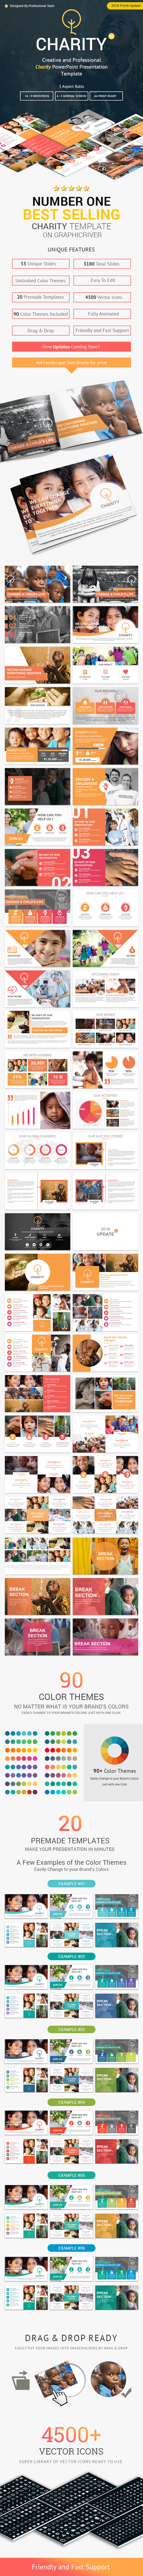 Charity Creative PowerPoint Presentation Template - Business PowerPoint Templates